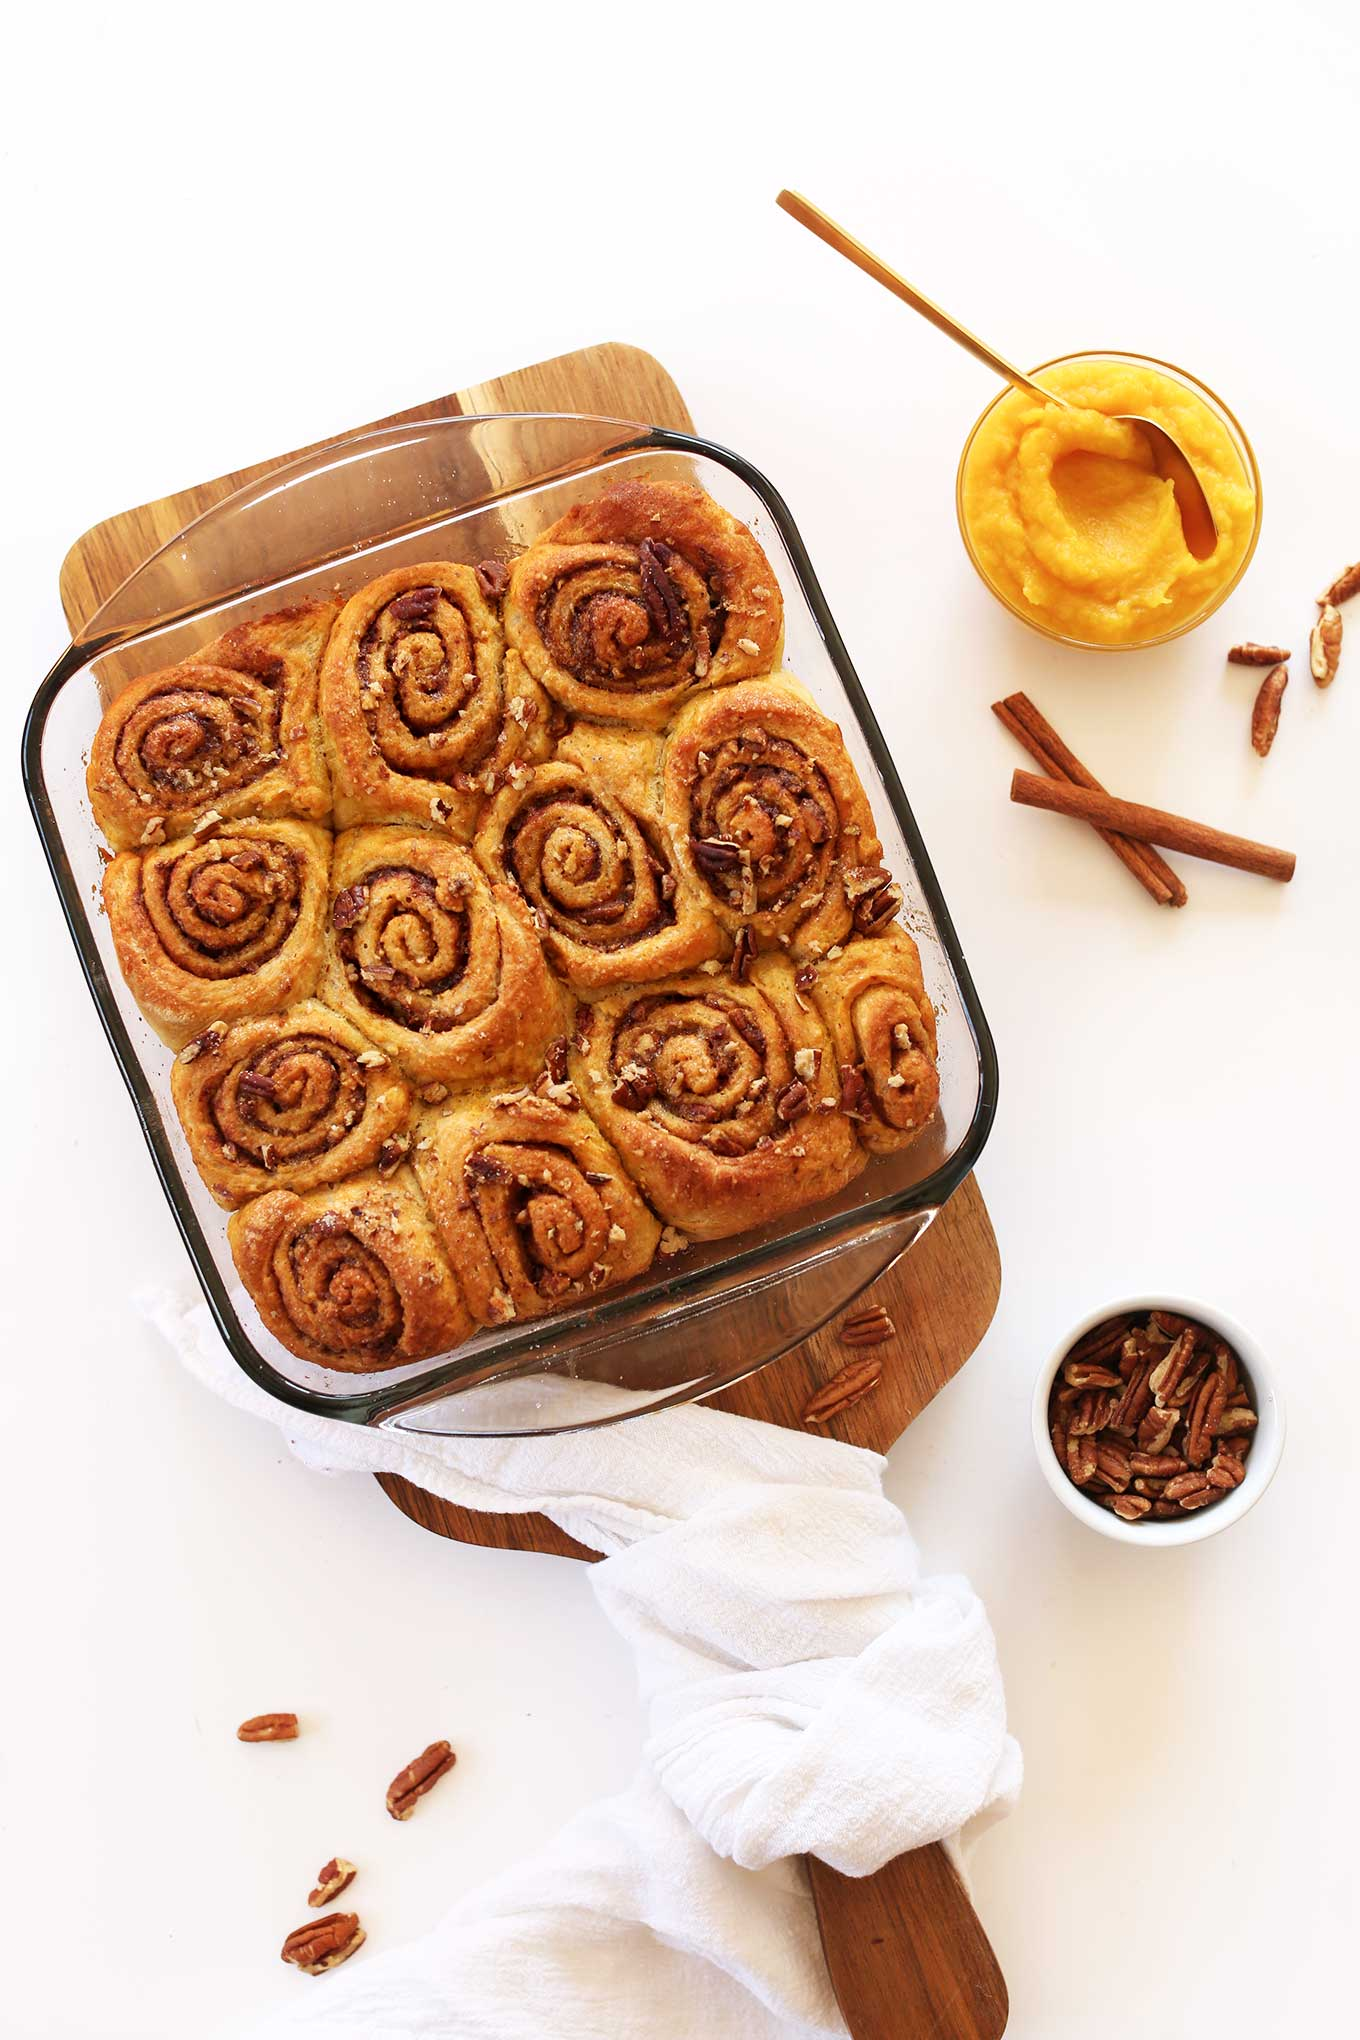 Pan of freshly baked Vegan Pumpkin Cinnamon Rolls alongside cinnamon sticks and bowls of pecans and pumpkin puree